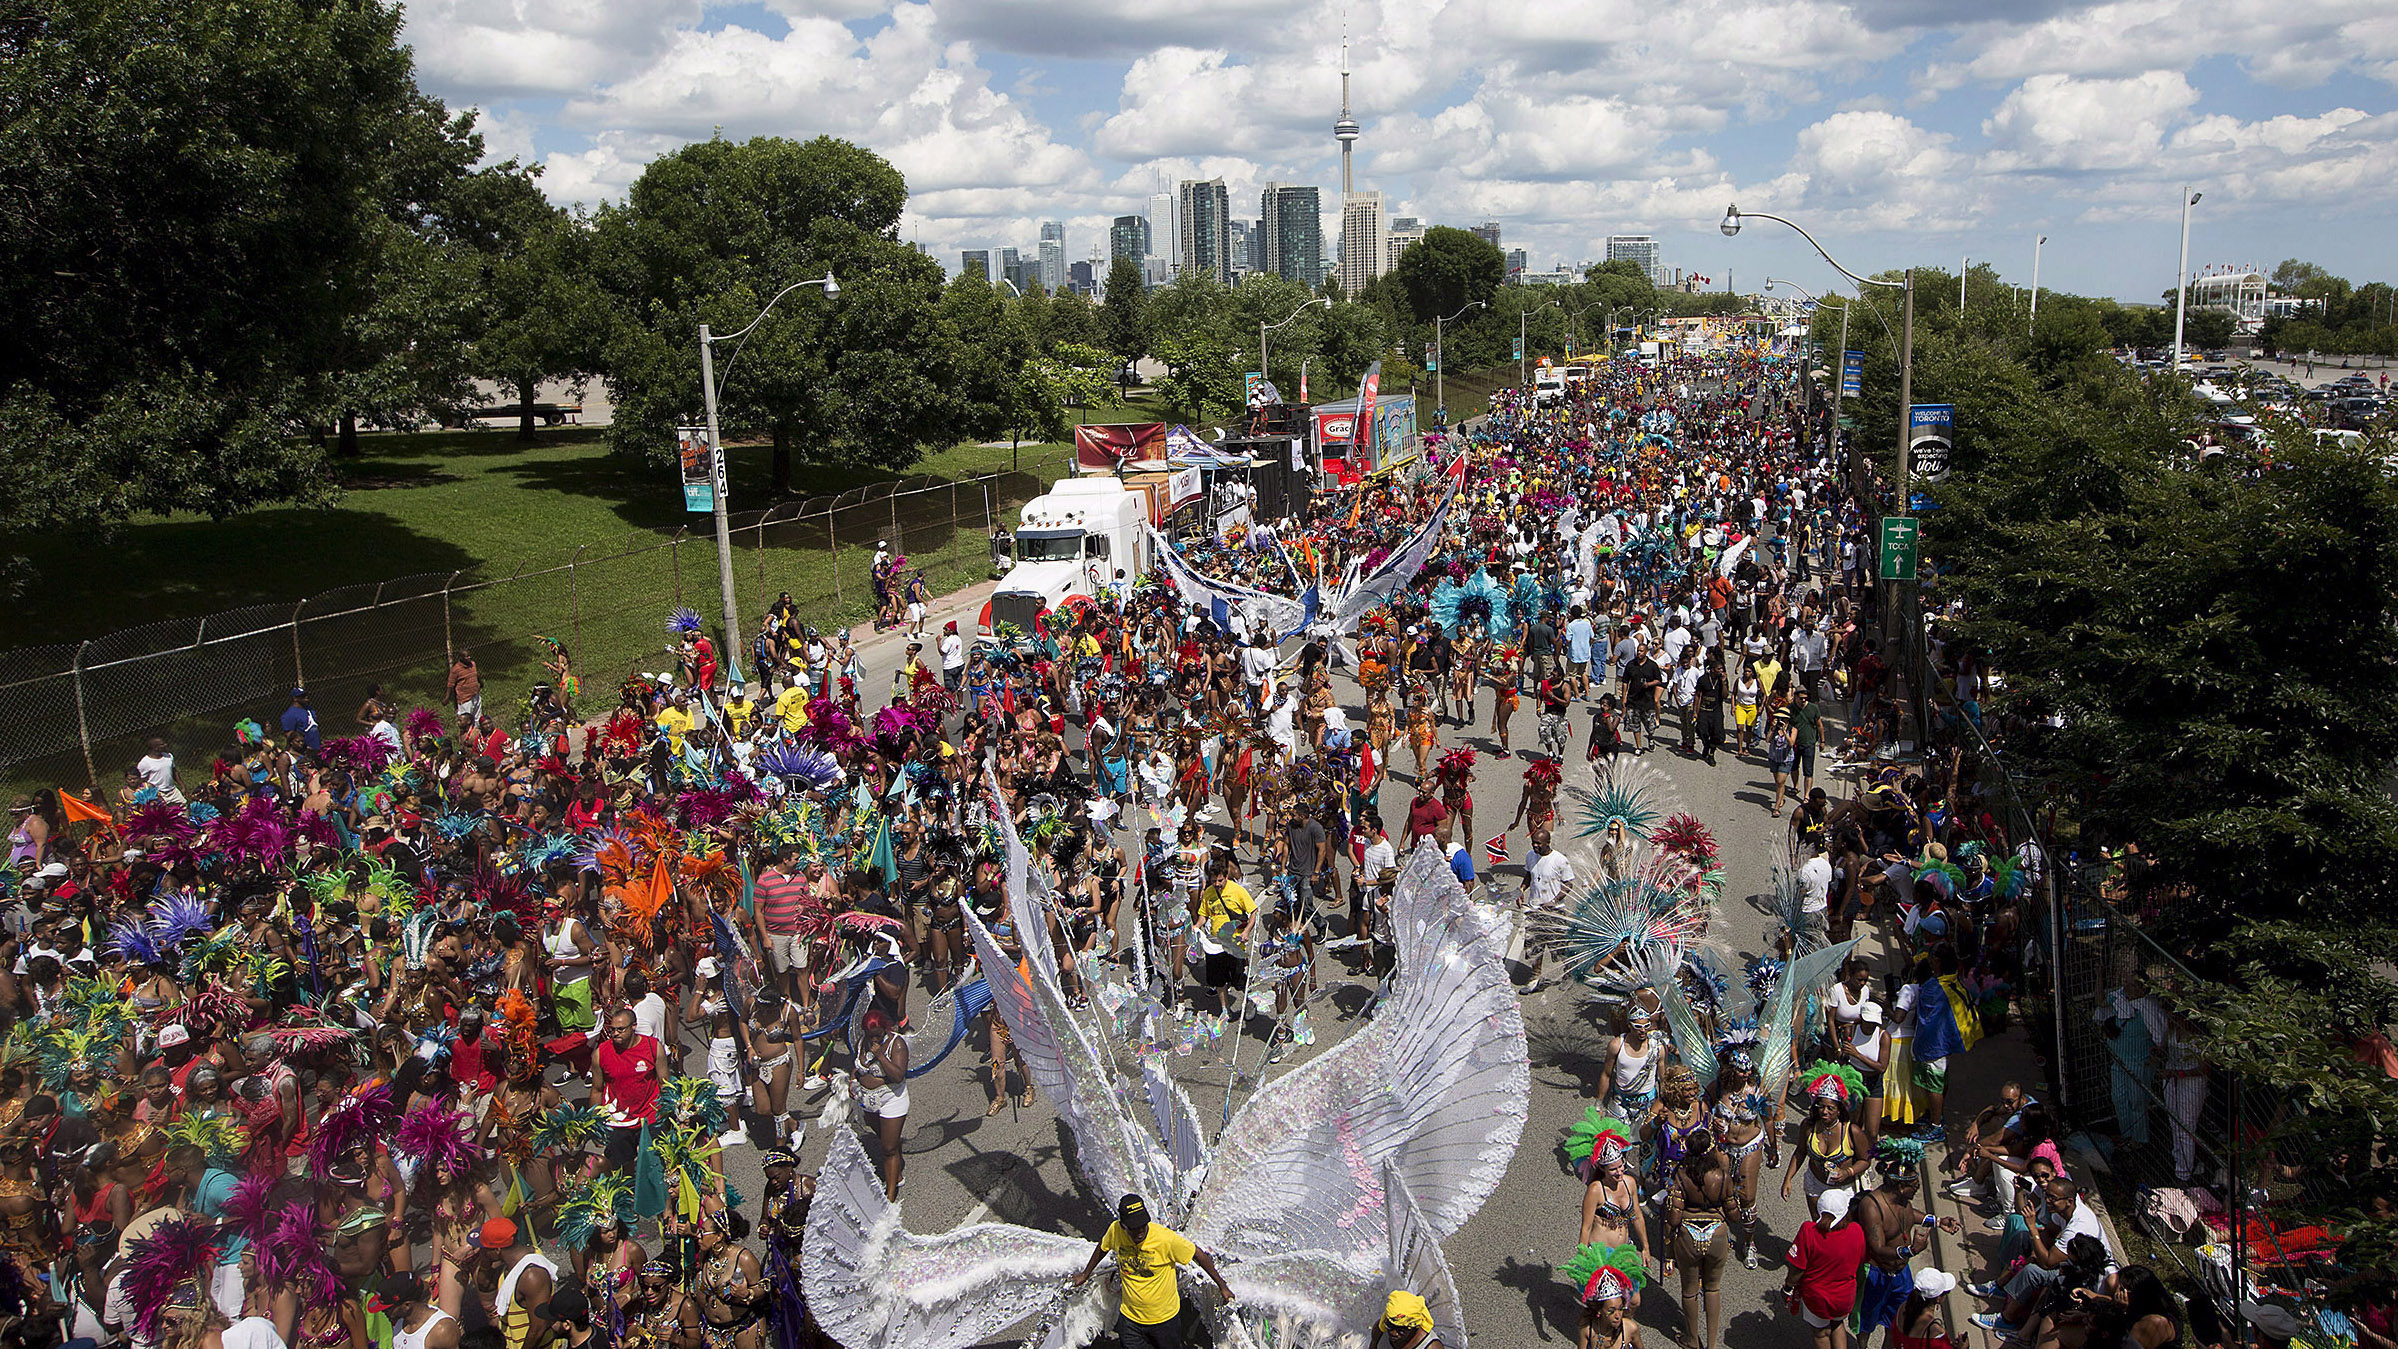 Paraders march down Lakeshore Boulevard at the Caribbean Carnival in Toronto on August 3, 2013. THE CANADIAN PRESS/Michelle Siu.